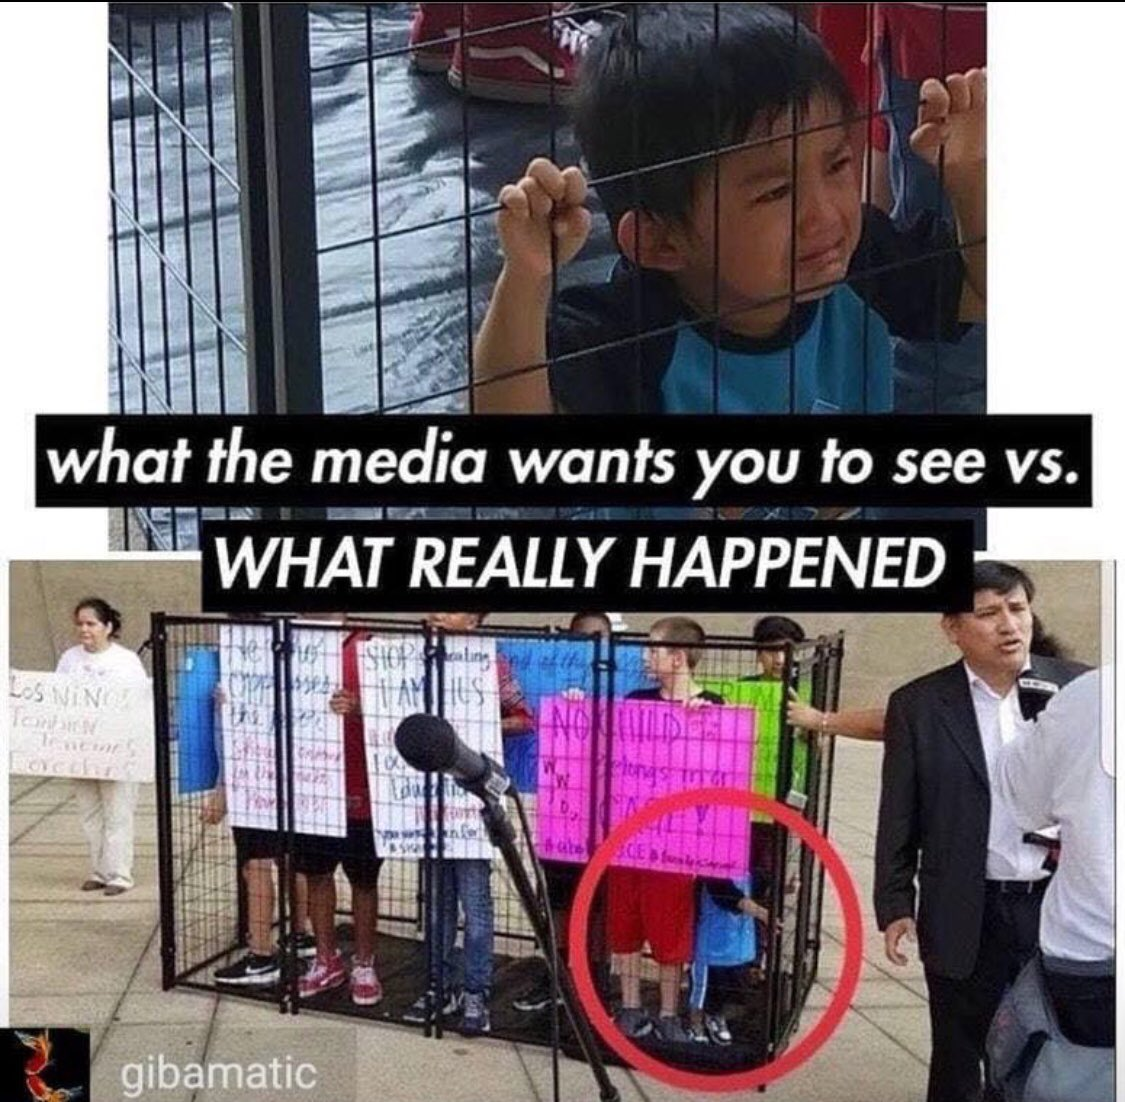 Regressive liberals keep posting misleading pics to wind up public against Trump. This posted by 'journalist' Jose Antonio.This child was never in ICE custody and not placed by gov in a cage. He was used by activist. They made him cry for a photo, kind of like Hamas. #MAGA